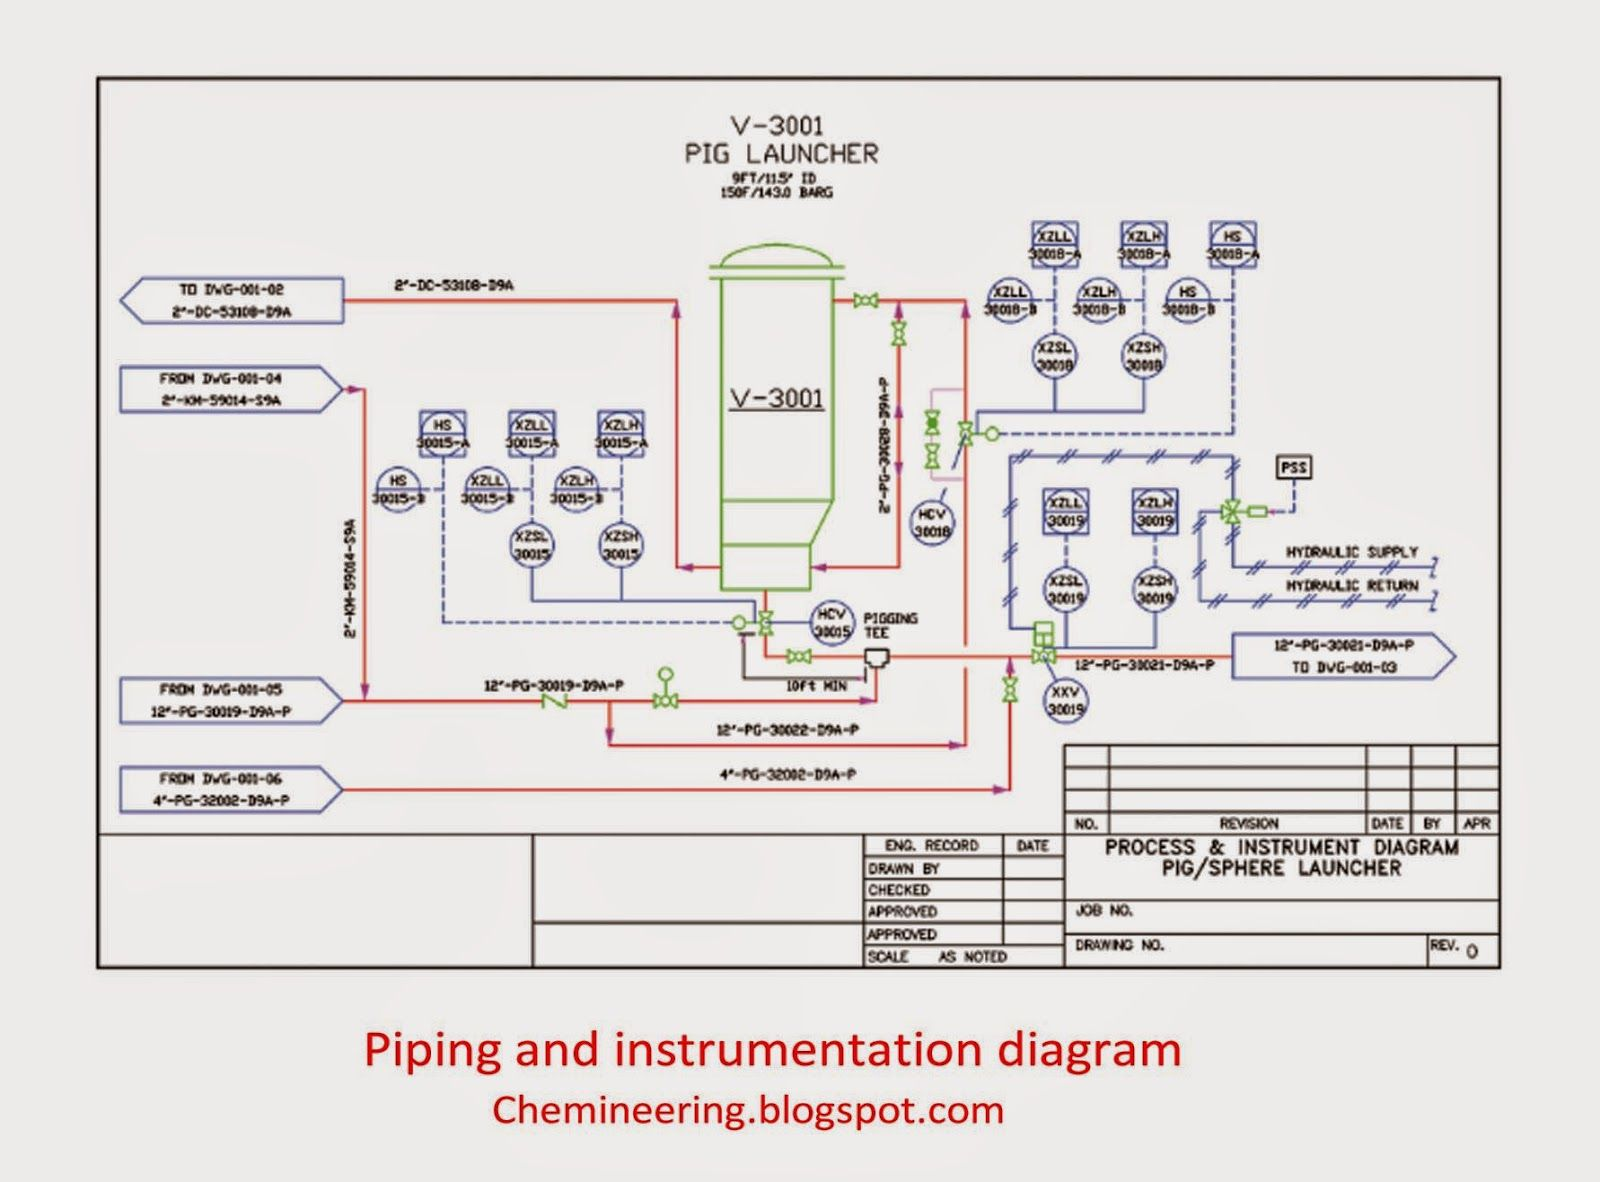 small resolution of piping and instrumentation diagram by chemineering blogspot com piping instrumentation diagram pdf piping instrumentation diagram